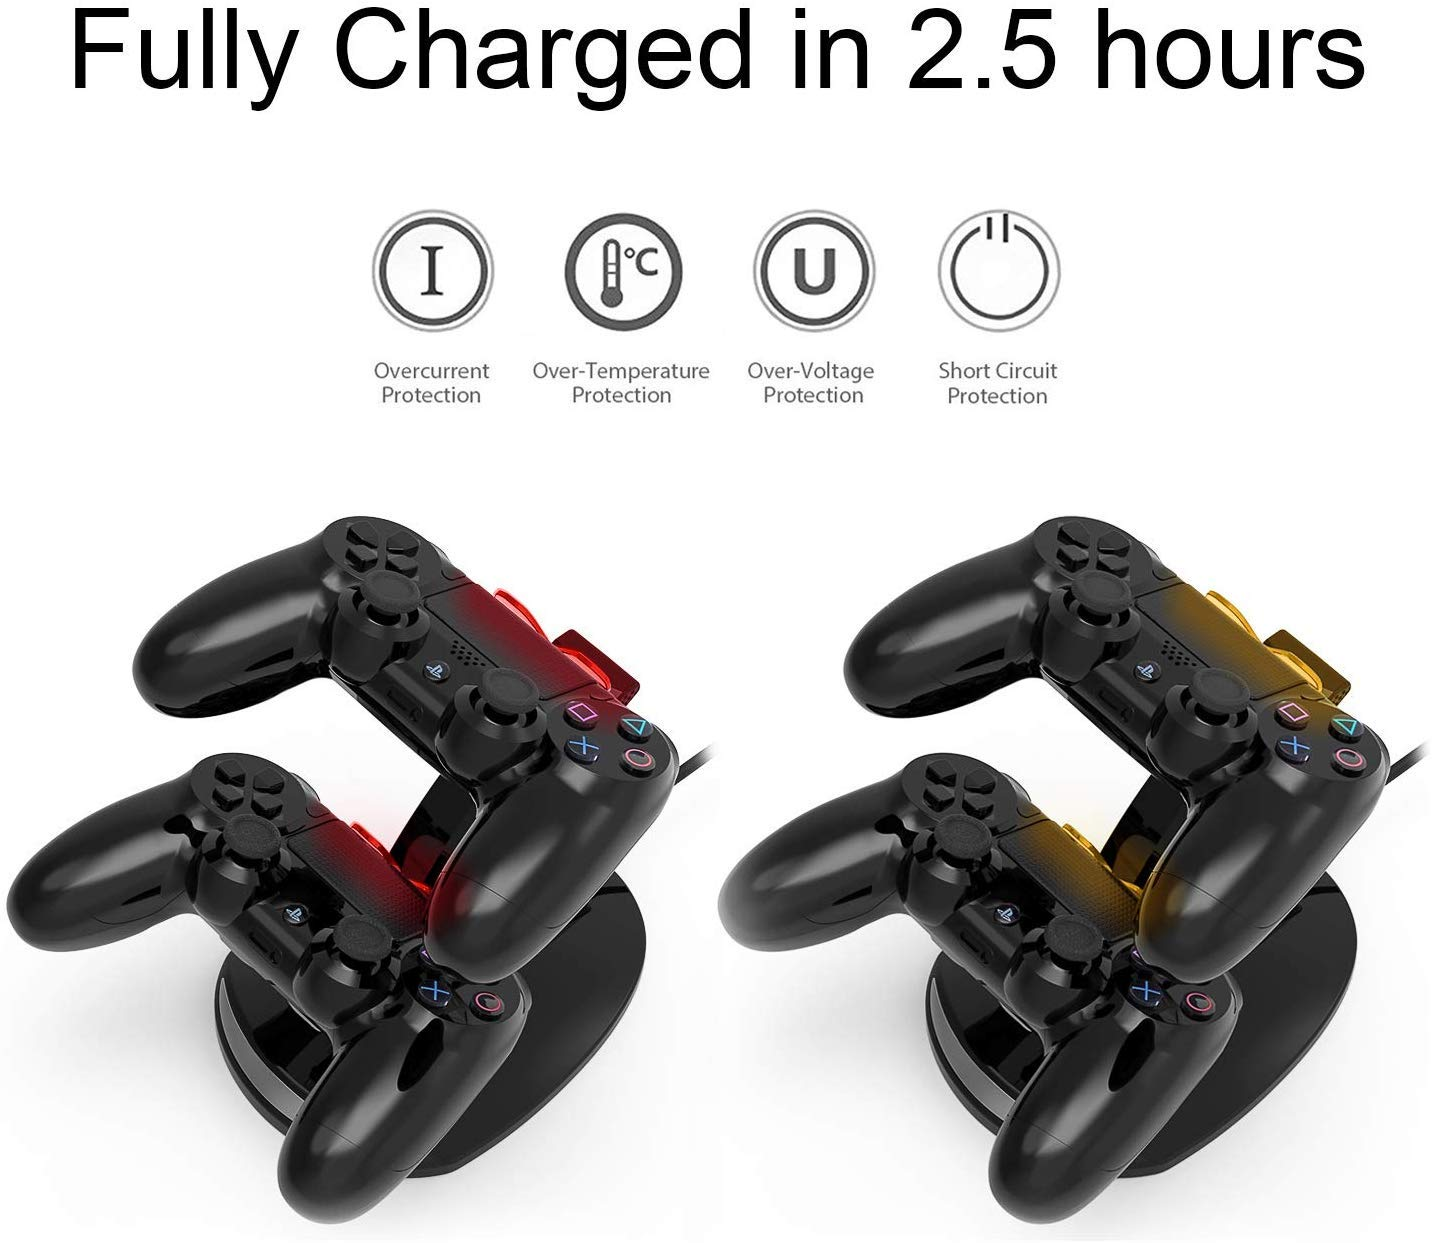 PS4 Controller Charger, PS4 Controller charging Station Wireless Charger with USB Charging Cable【Advanced Version】, PS4 Controller Charging Dock for PS4/PS4 Pro /PS4 Slim Controller